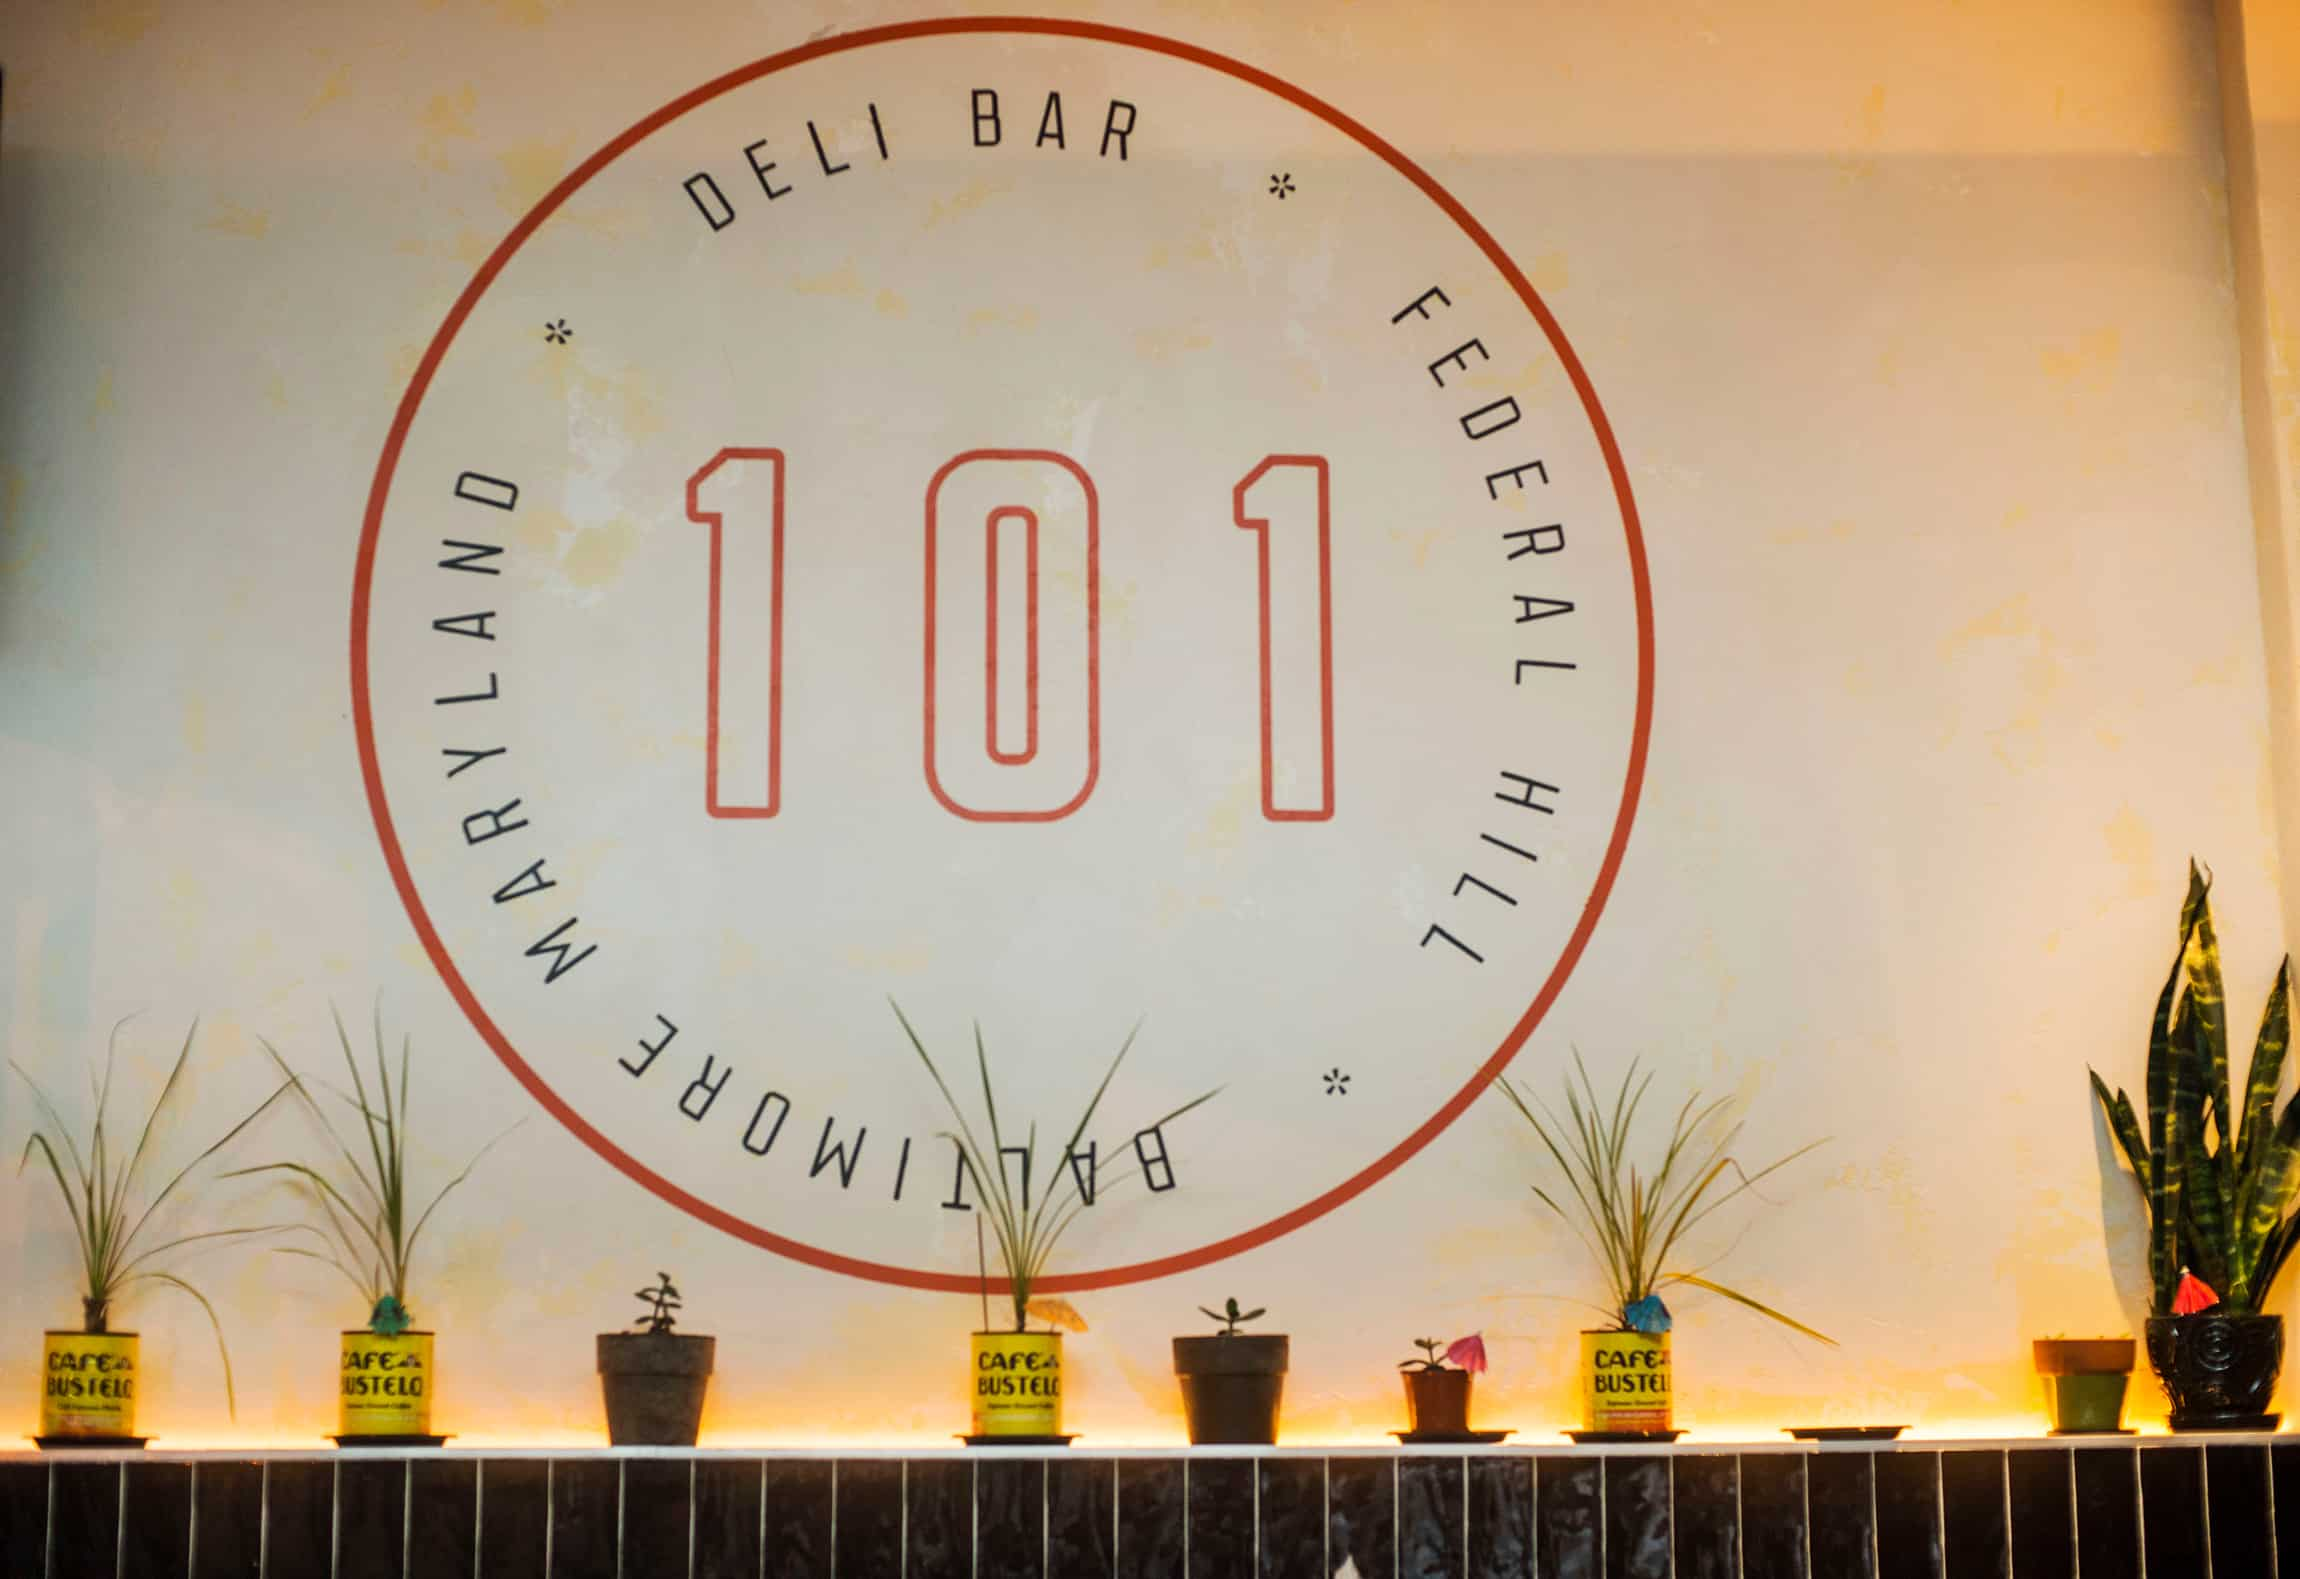 101 Delibar restaurant concept development and branding interior design wayfinding signage design